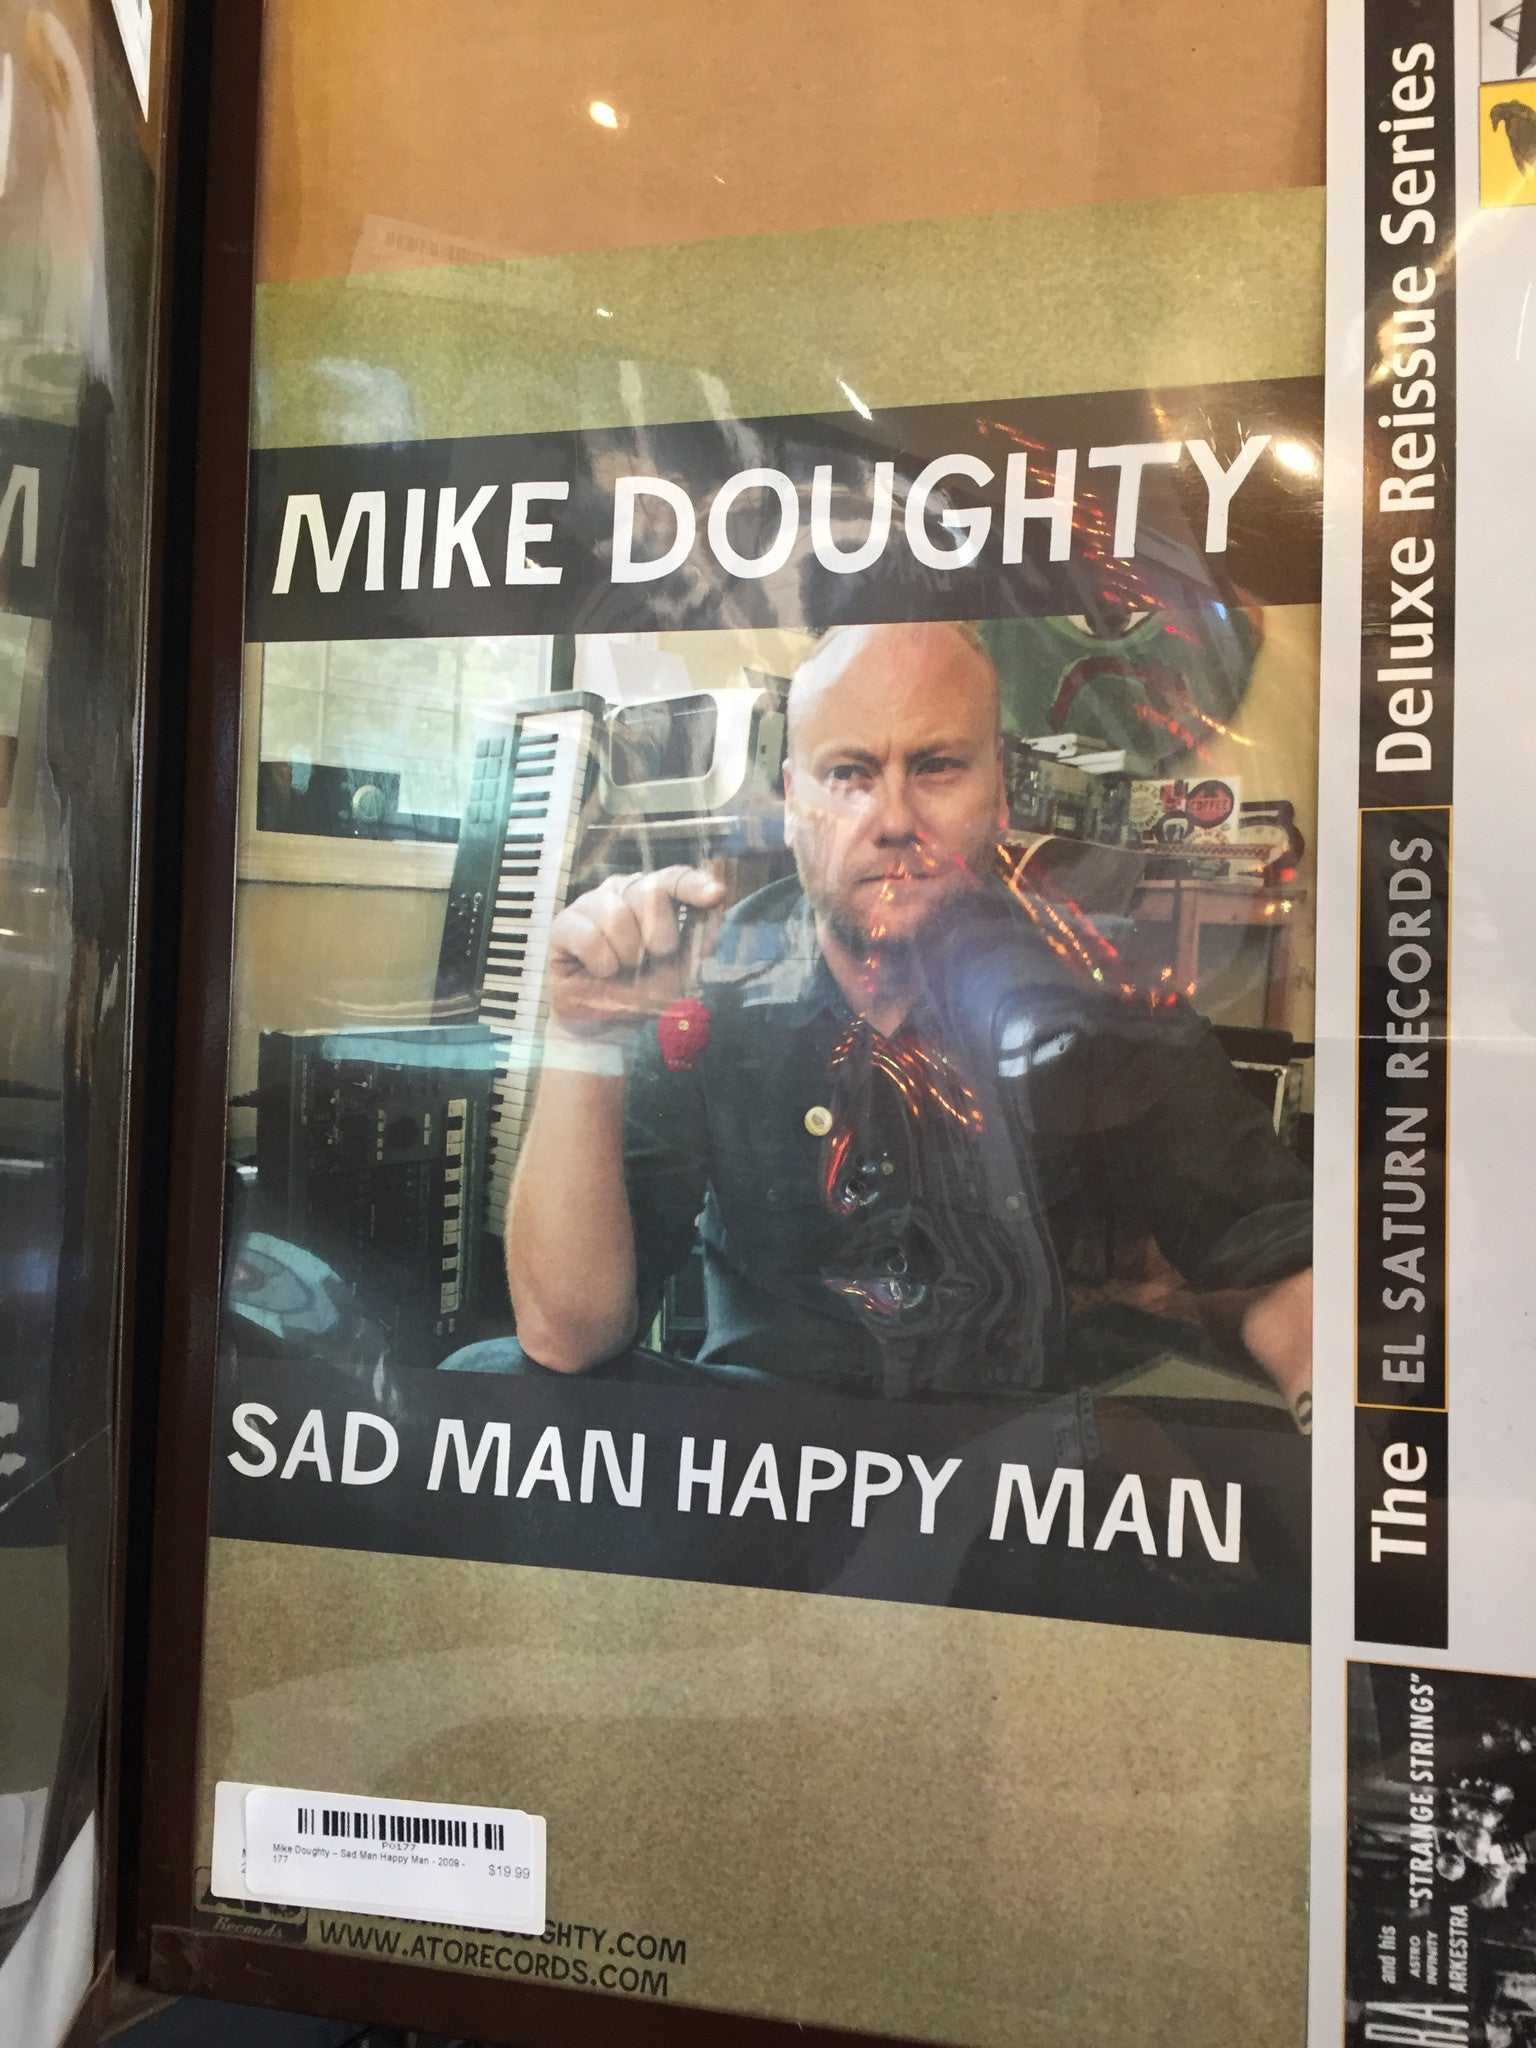 Mike Doughty – Sad Man Happy Man - 2009 - 0177 Poster